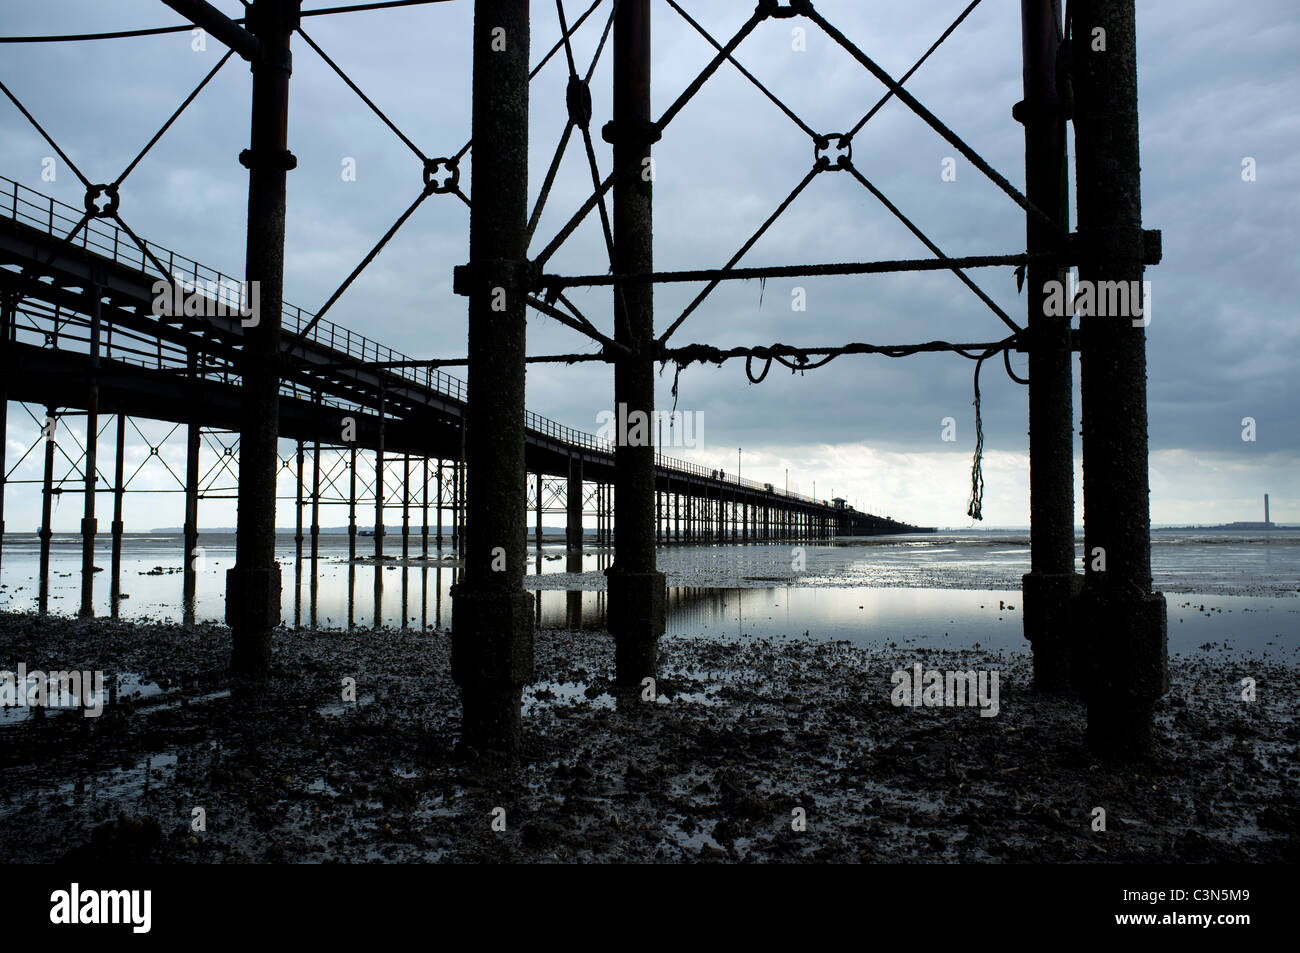 Southend Pier, Southed-on-Sea, Essex, England. The pier is the longest in the world at 1.25 miles in length stretching Stock Photo